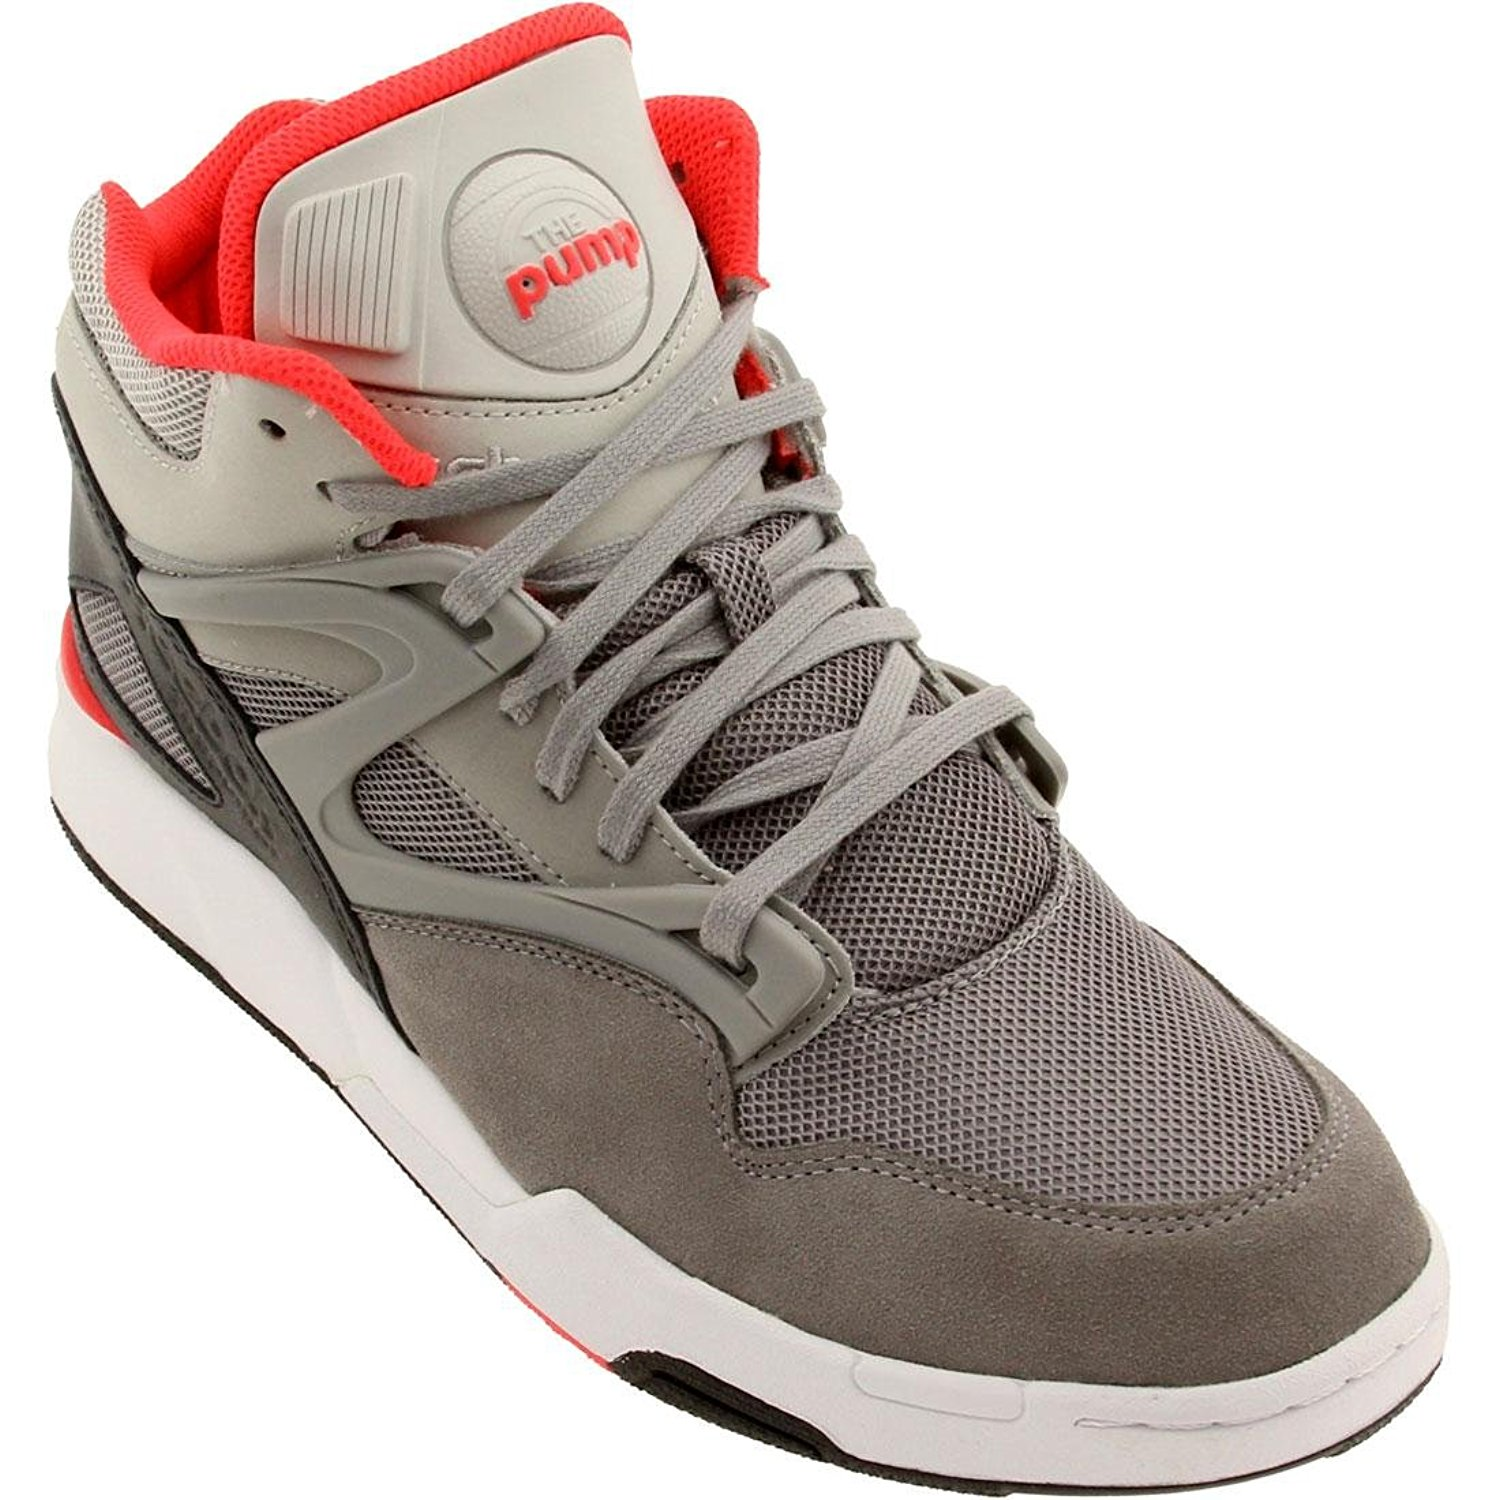 b6a3008130b8 Get Quotations · Reebok Pump Omni Lite Basketball Men s Shoes Size